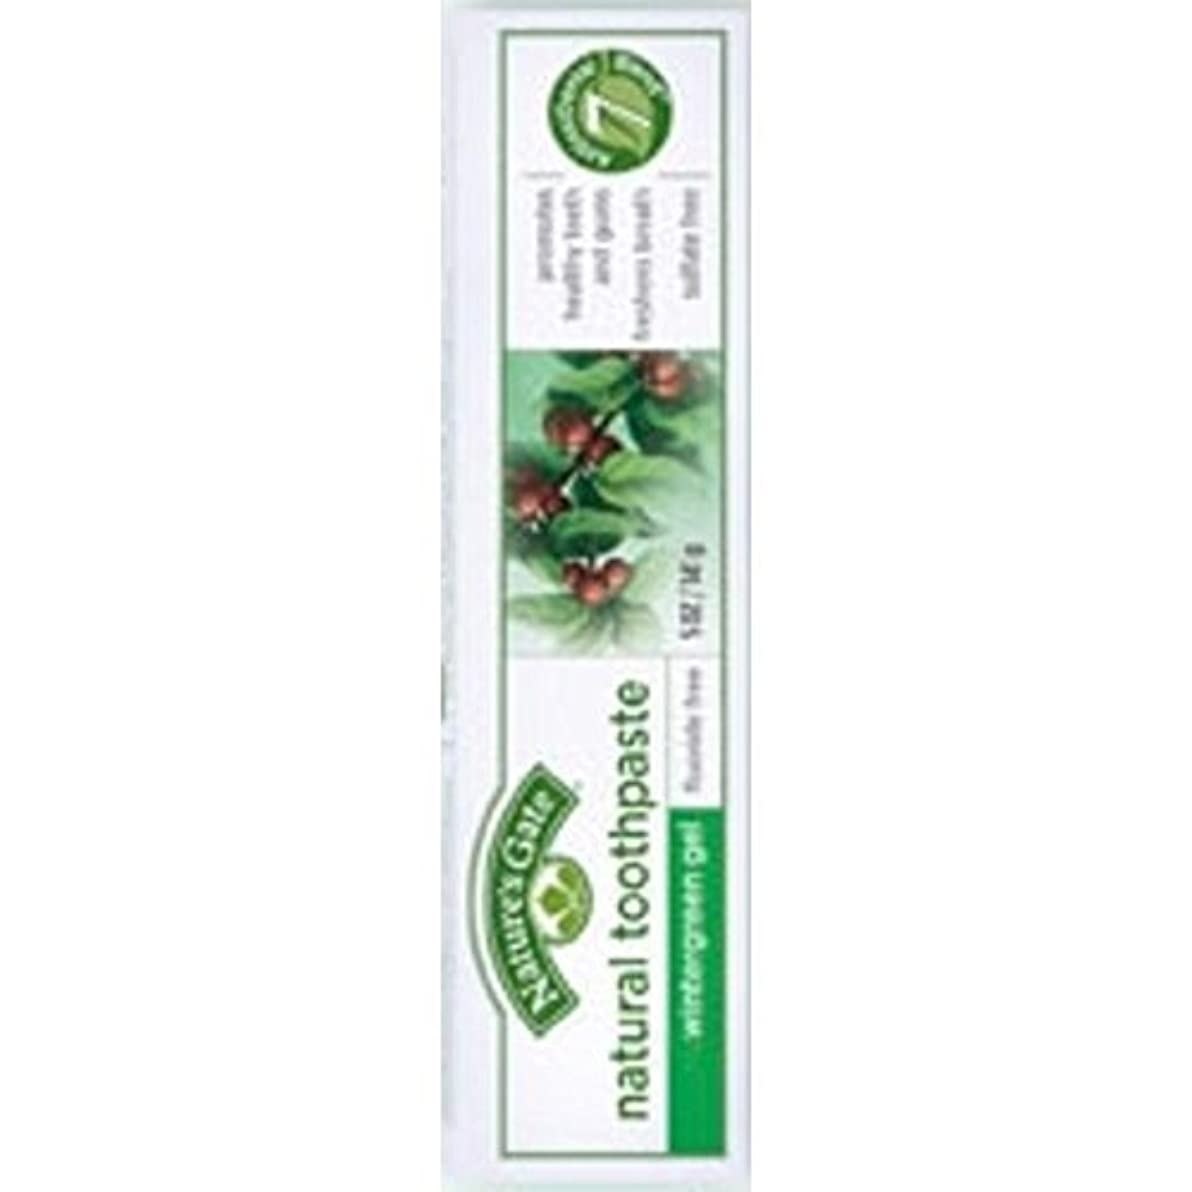 硬さ解読するハミングバードNature's Gate Natural Toothpaste Gel Flouride Free Wintergreen - 5 oz - Case of 6 by Nature's Gate [並行輸入品]